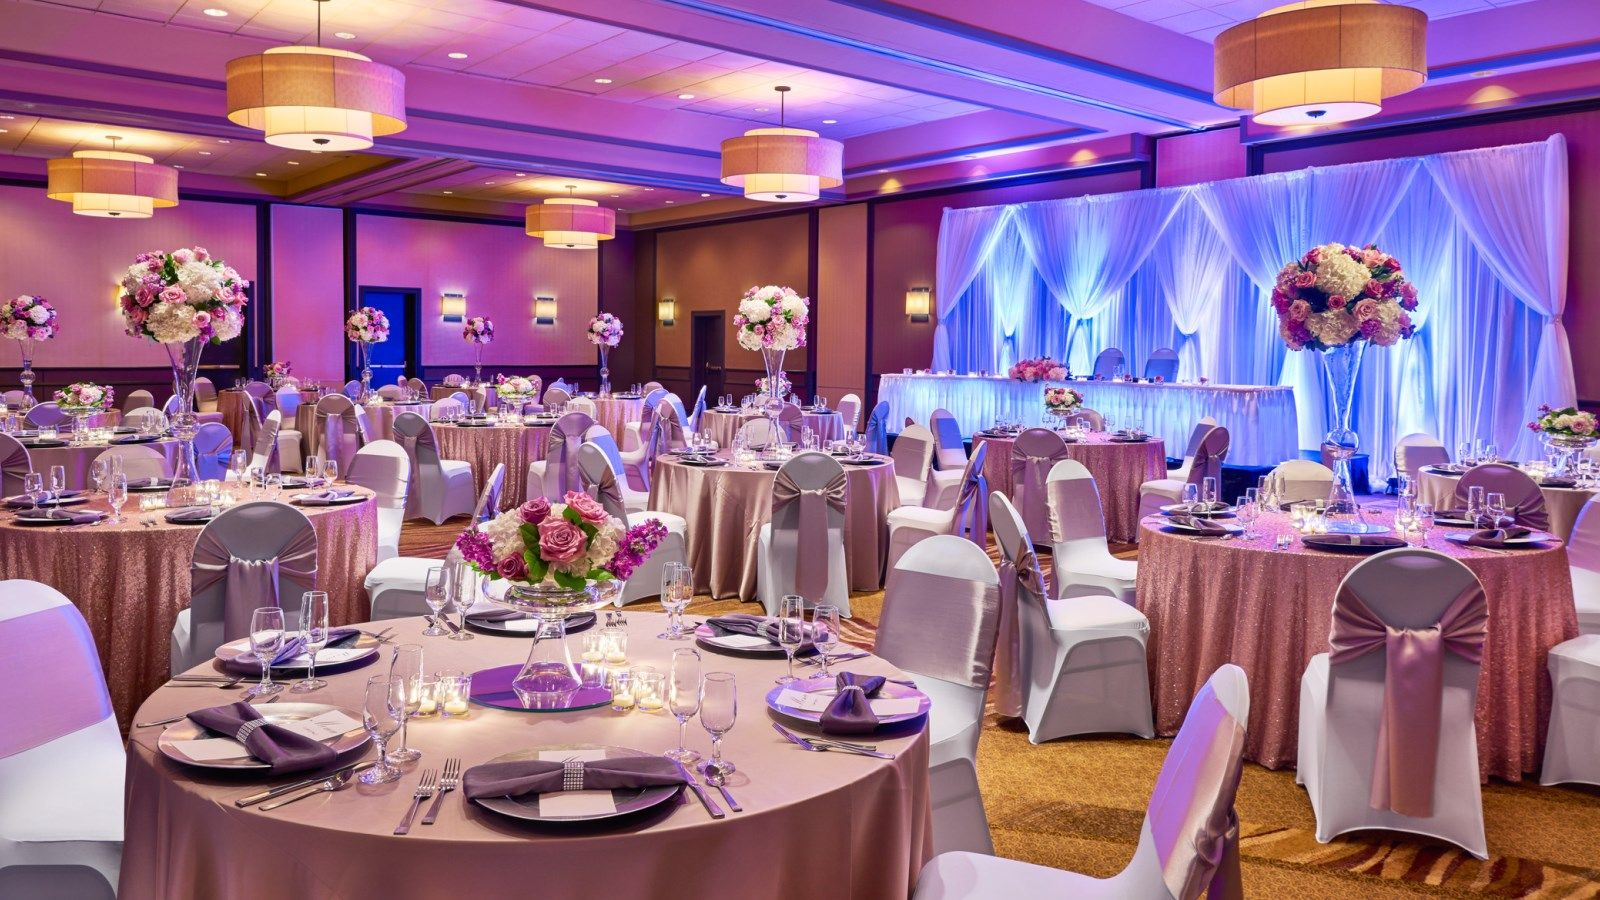 Milwaukee Wedding Venues - Ballroom